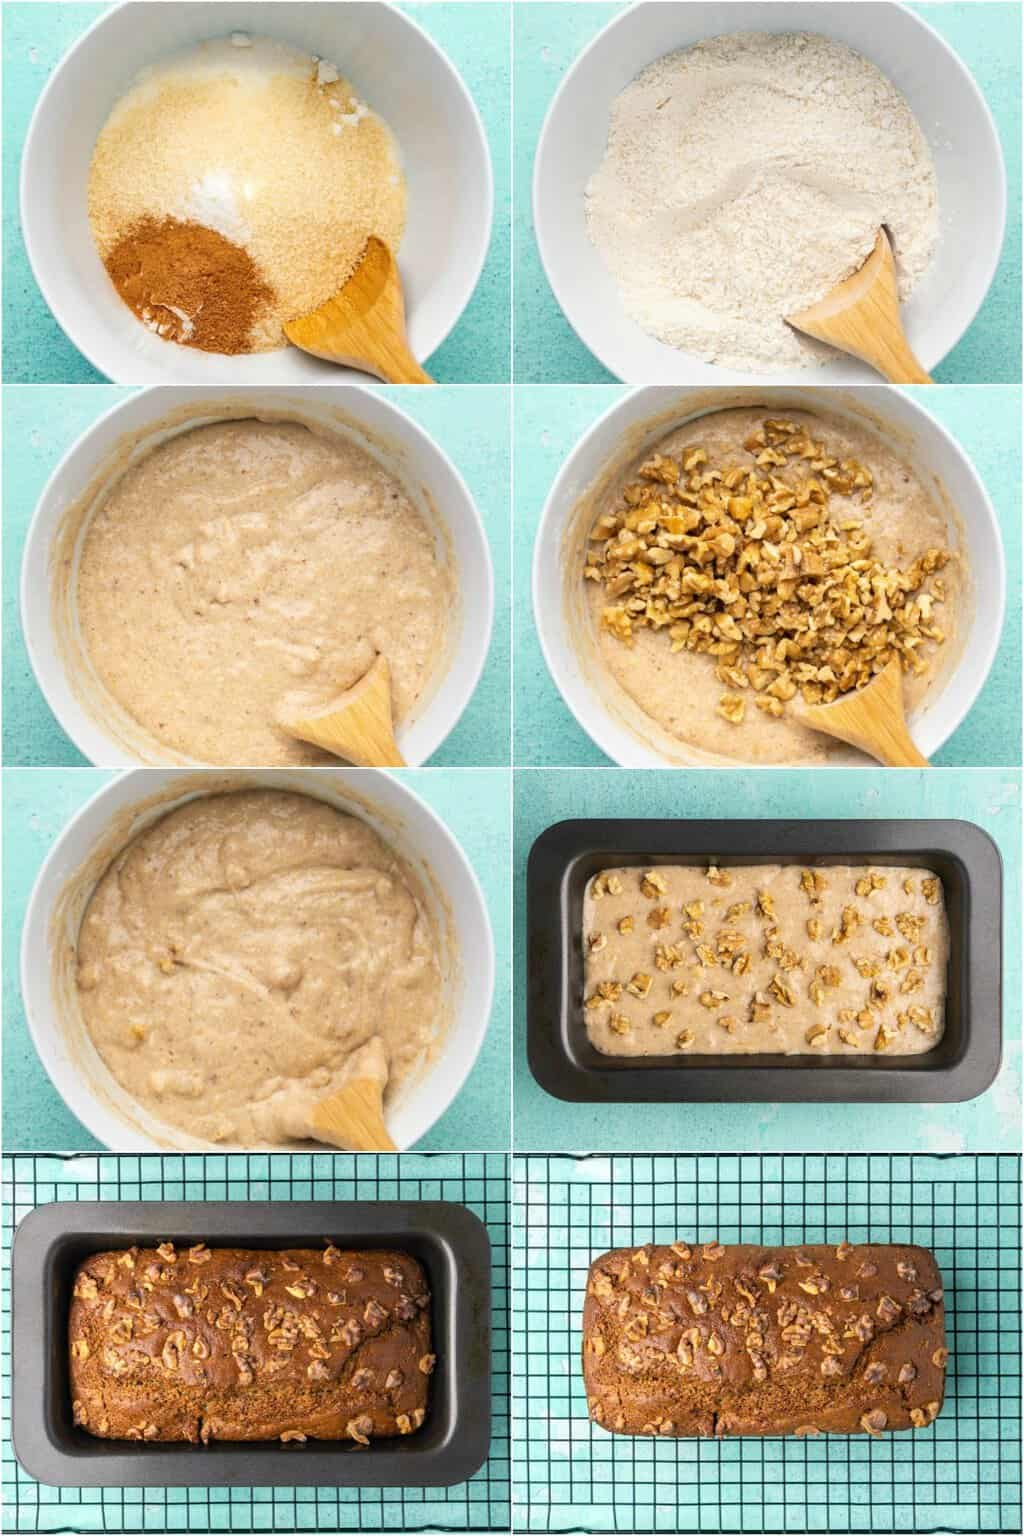 Step by step process photo collage of making vegan gluten free banana bread.